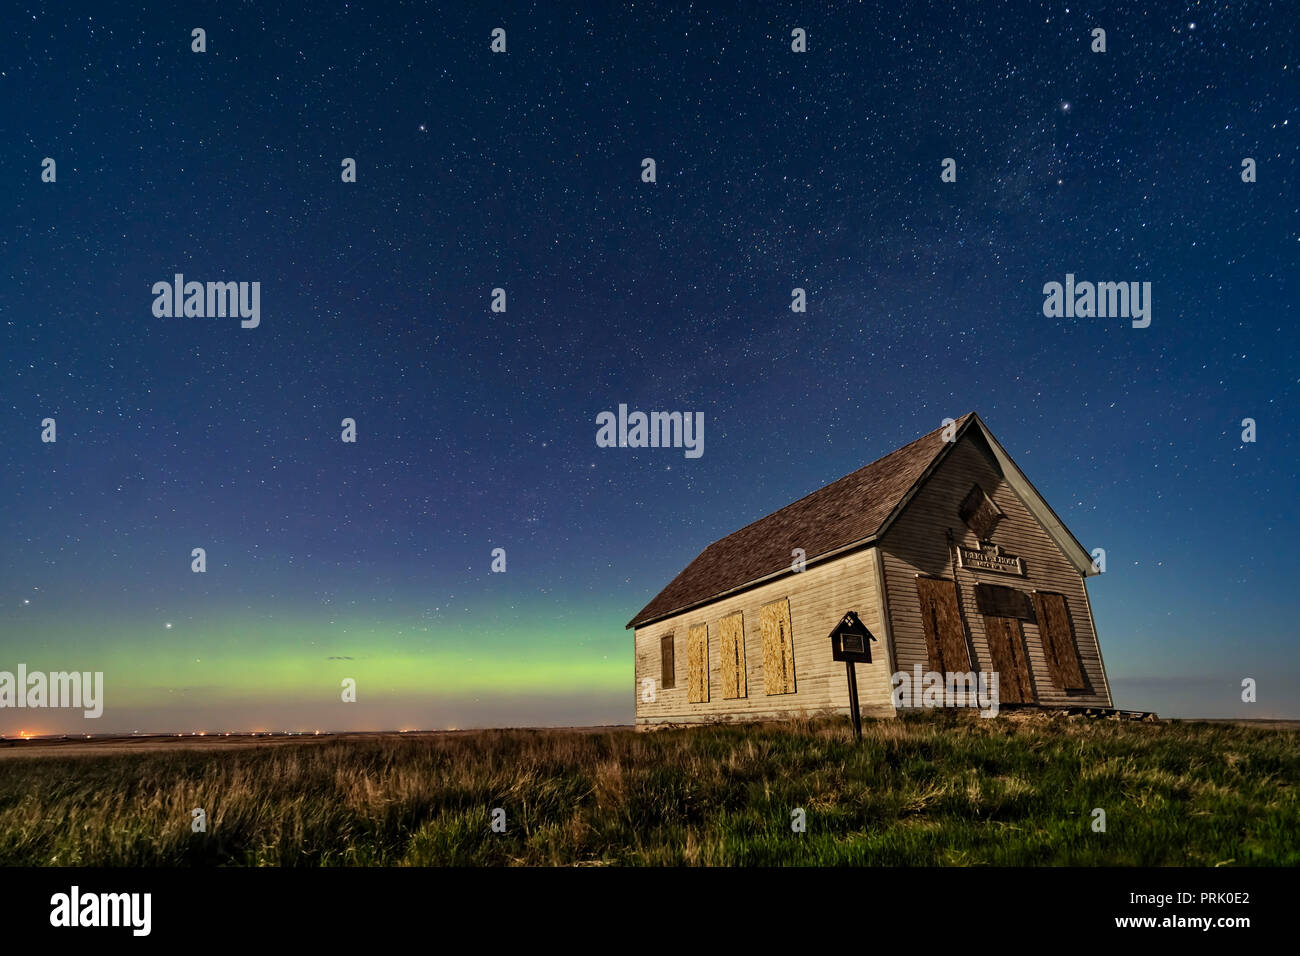 The 1910 Liberty Schoolhouse, a pioneer one-room school, on the Alberta prairie near Majorville, in the moonlight with an aurora across the north. Pol - Stock Image